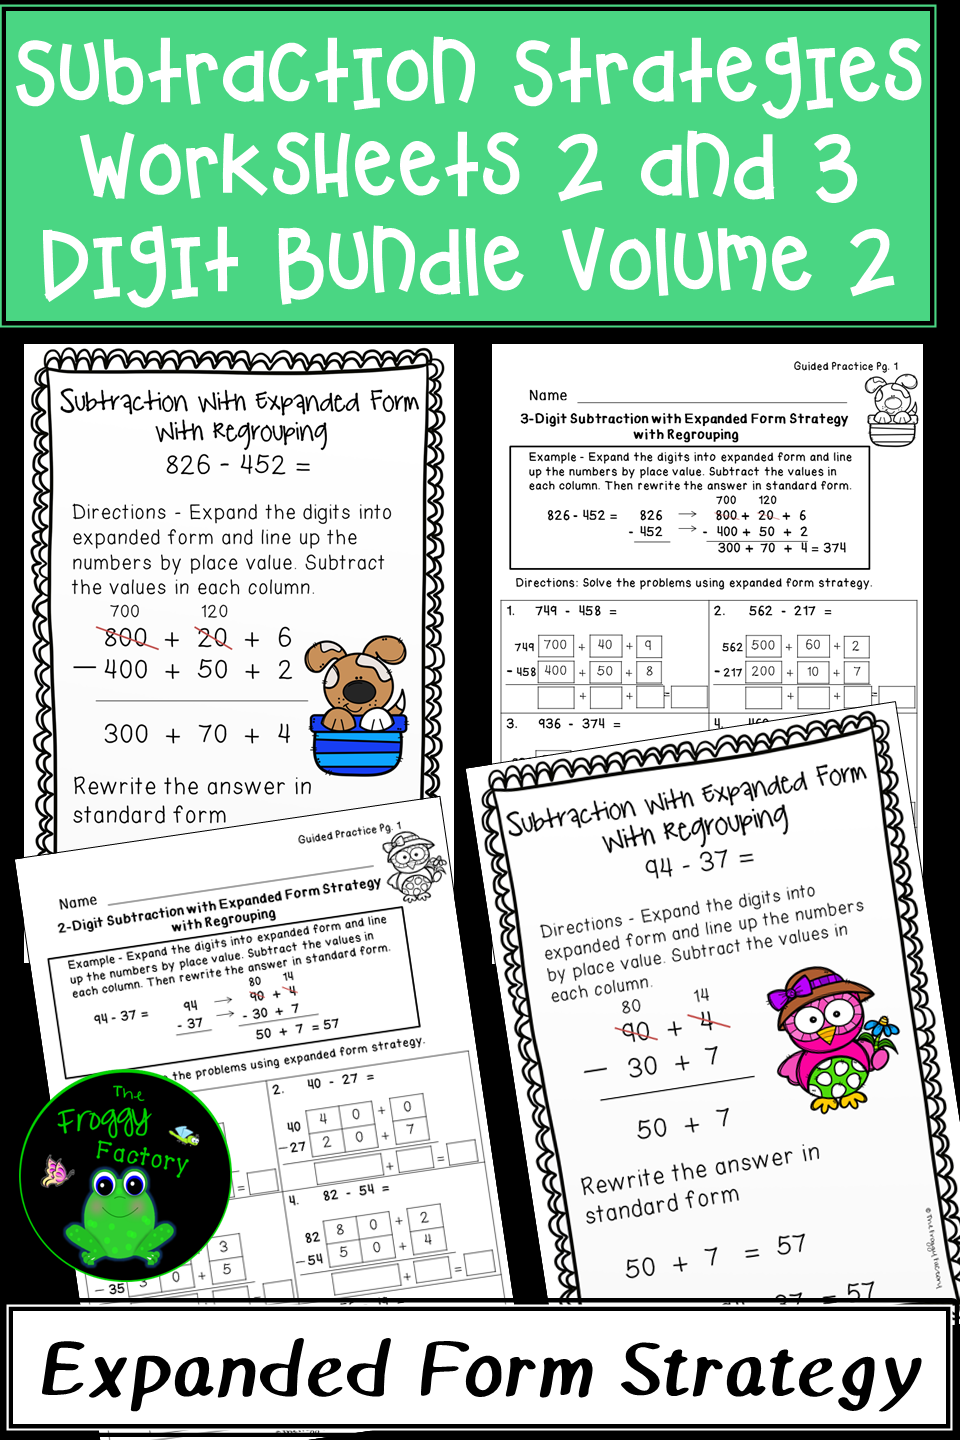 Subtraction Strategies Worksheets Expanded Form Bundle Volume 2